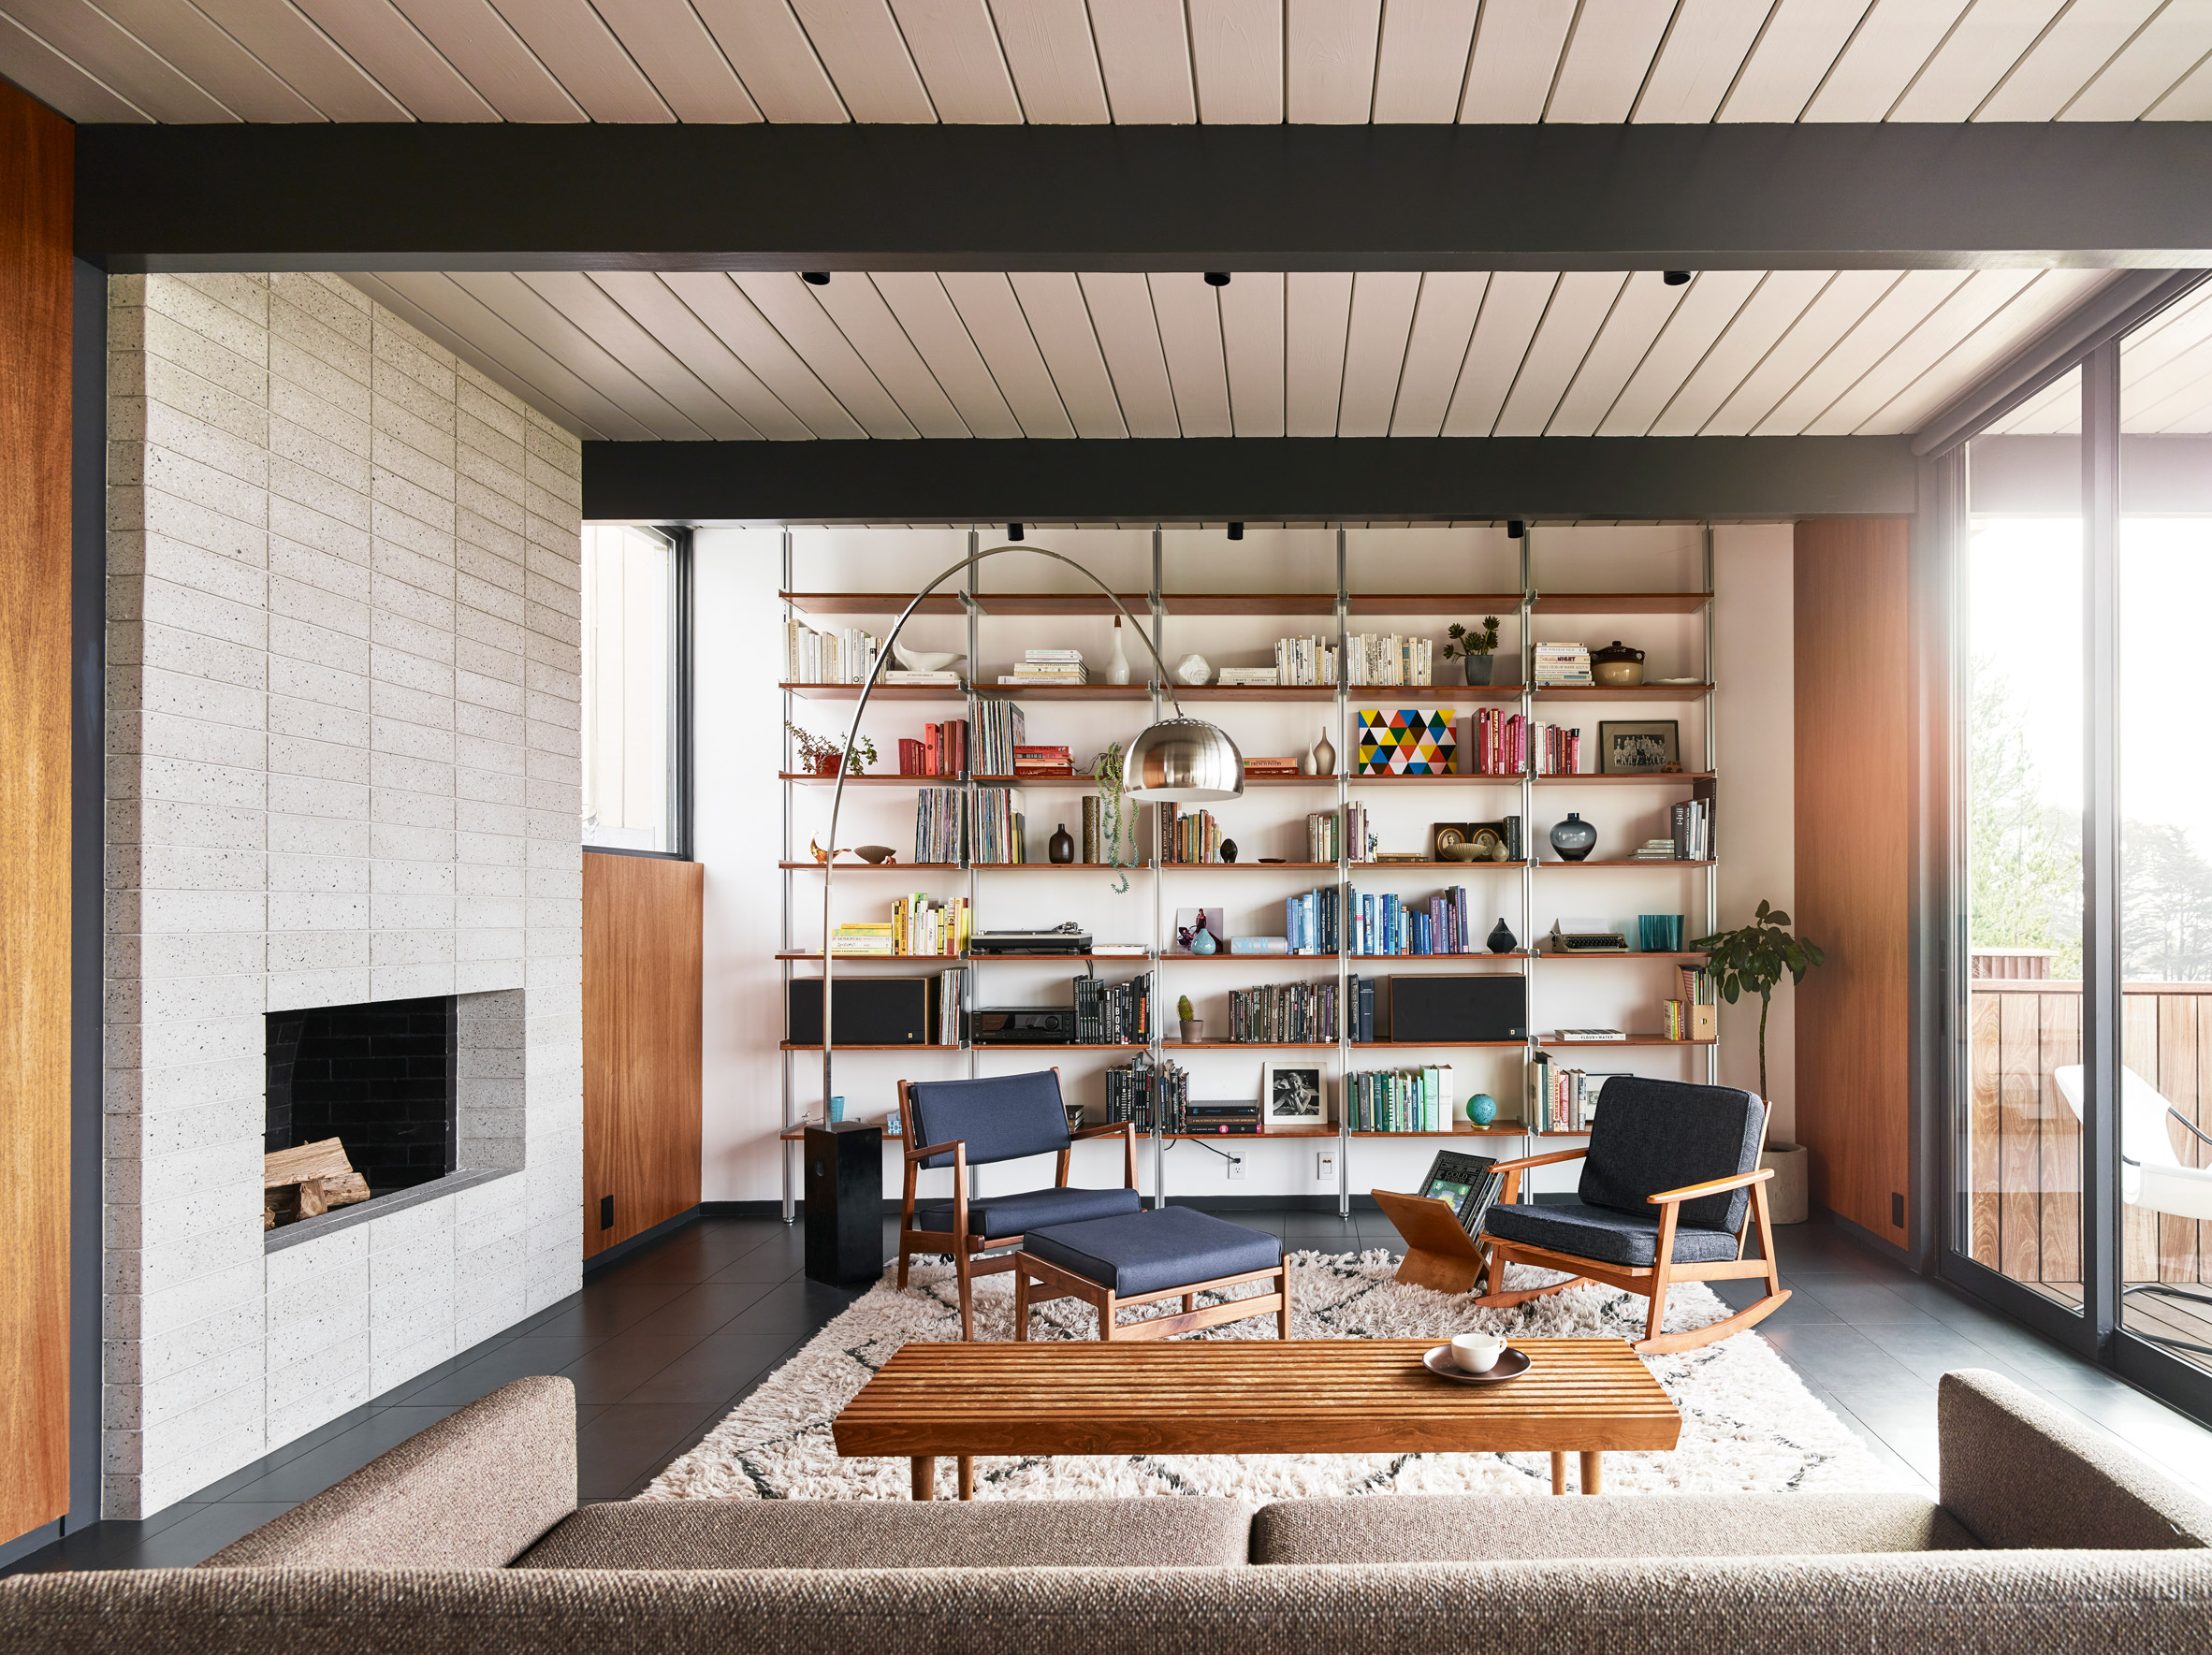 Diamond House by Michael Hennessey Architecture